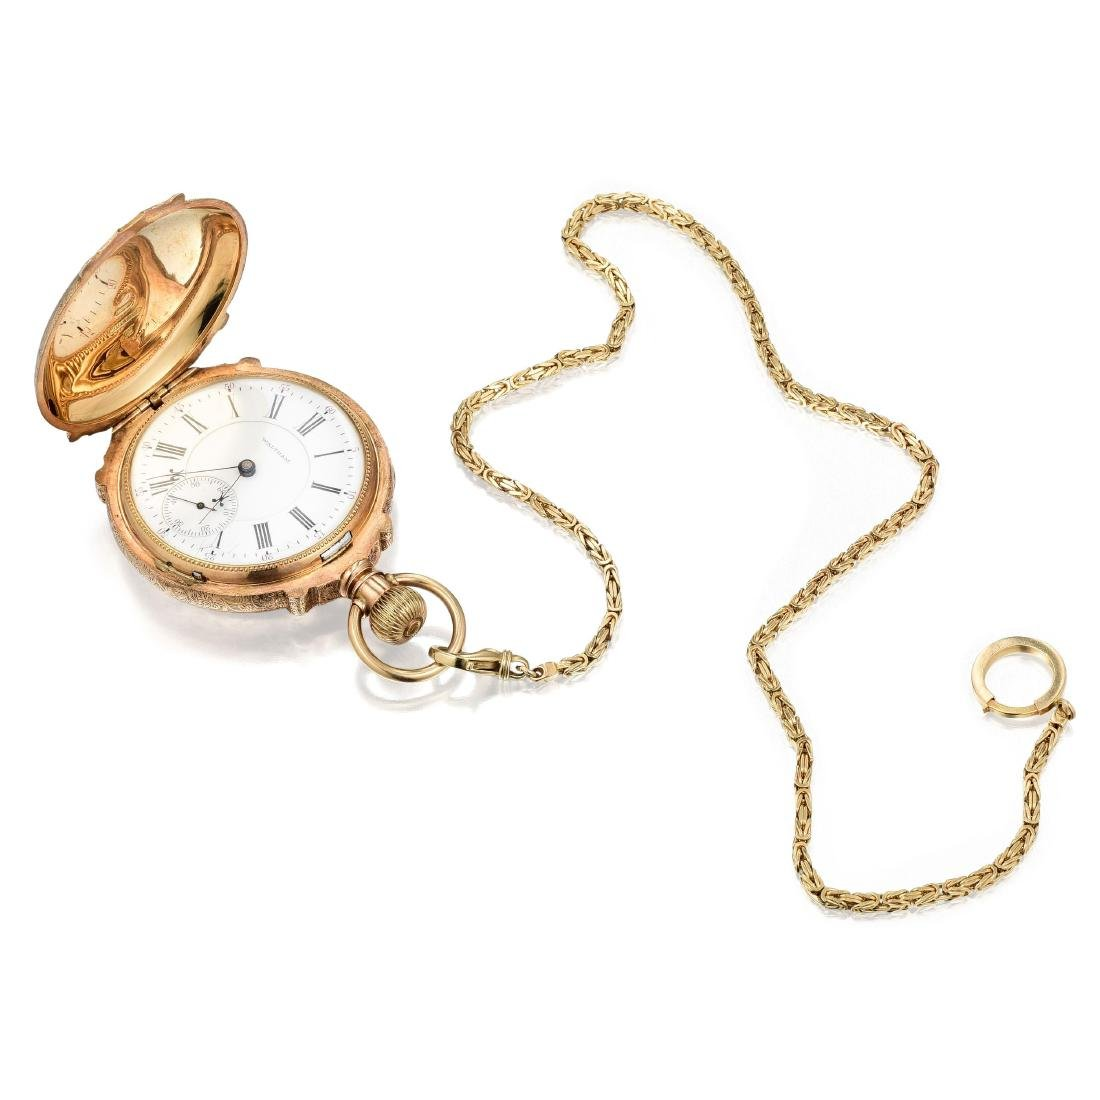 Waltham Antique Pocket Watch with 14K Gold Hunter Case